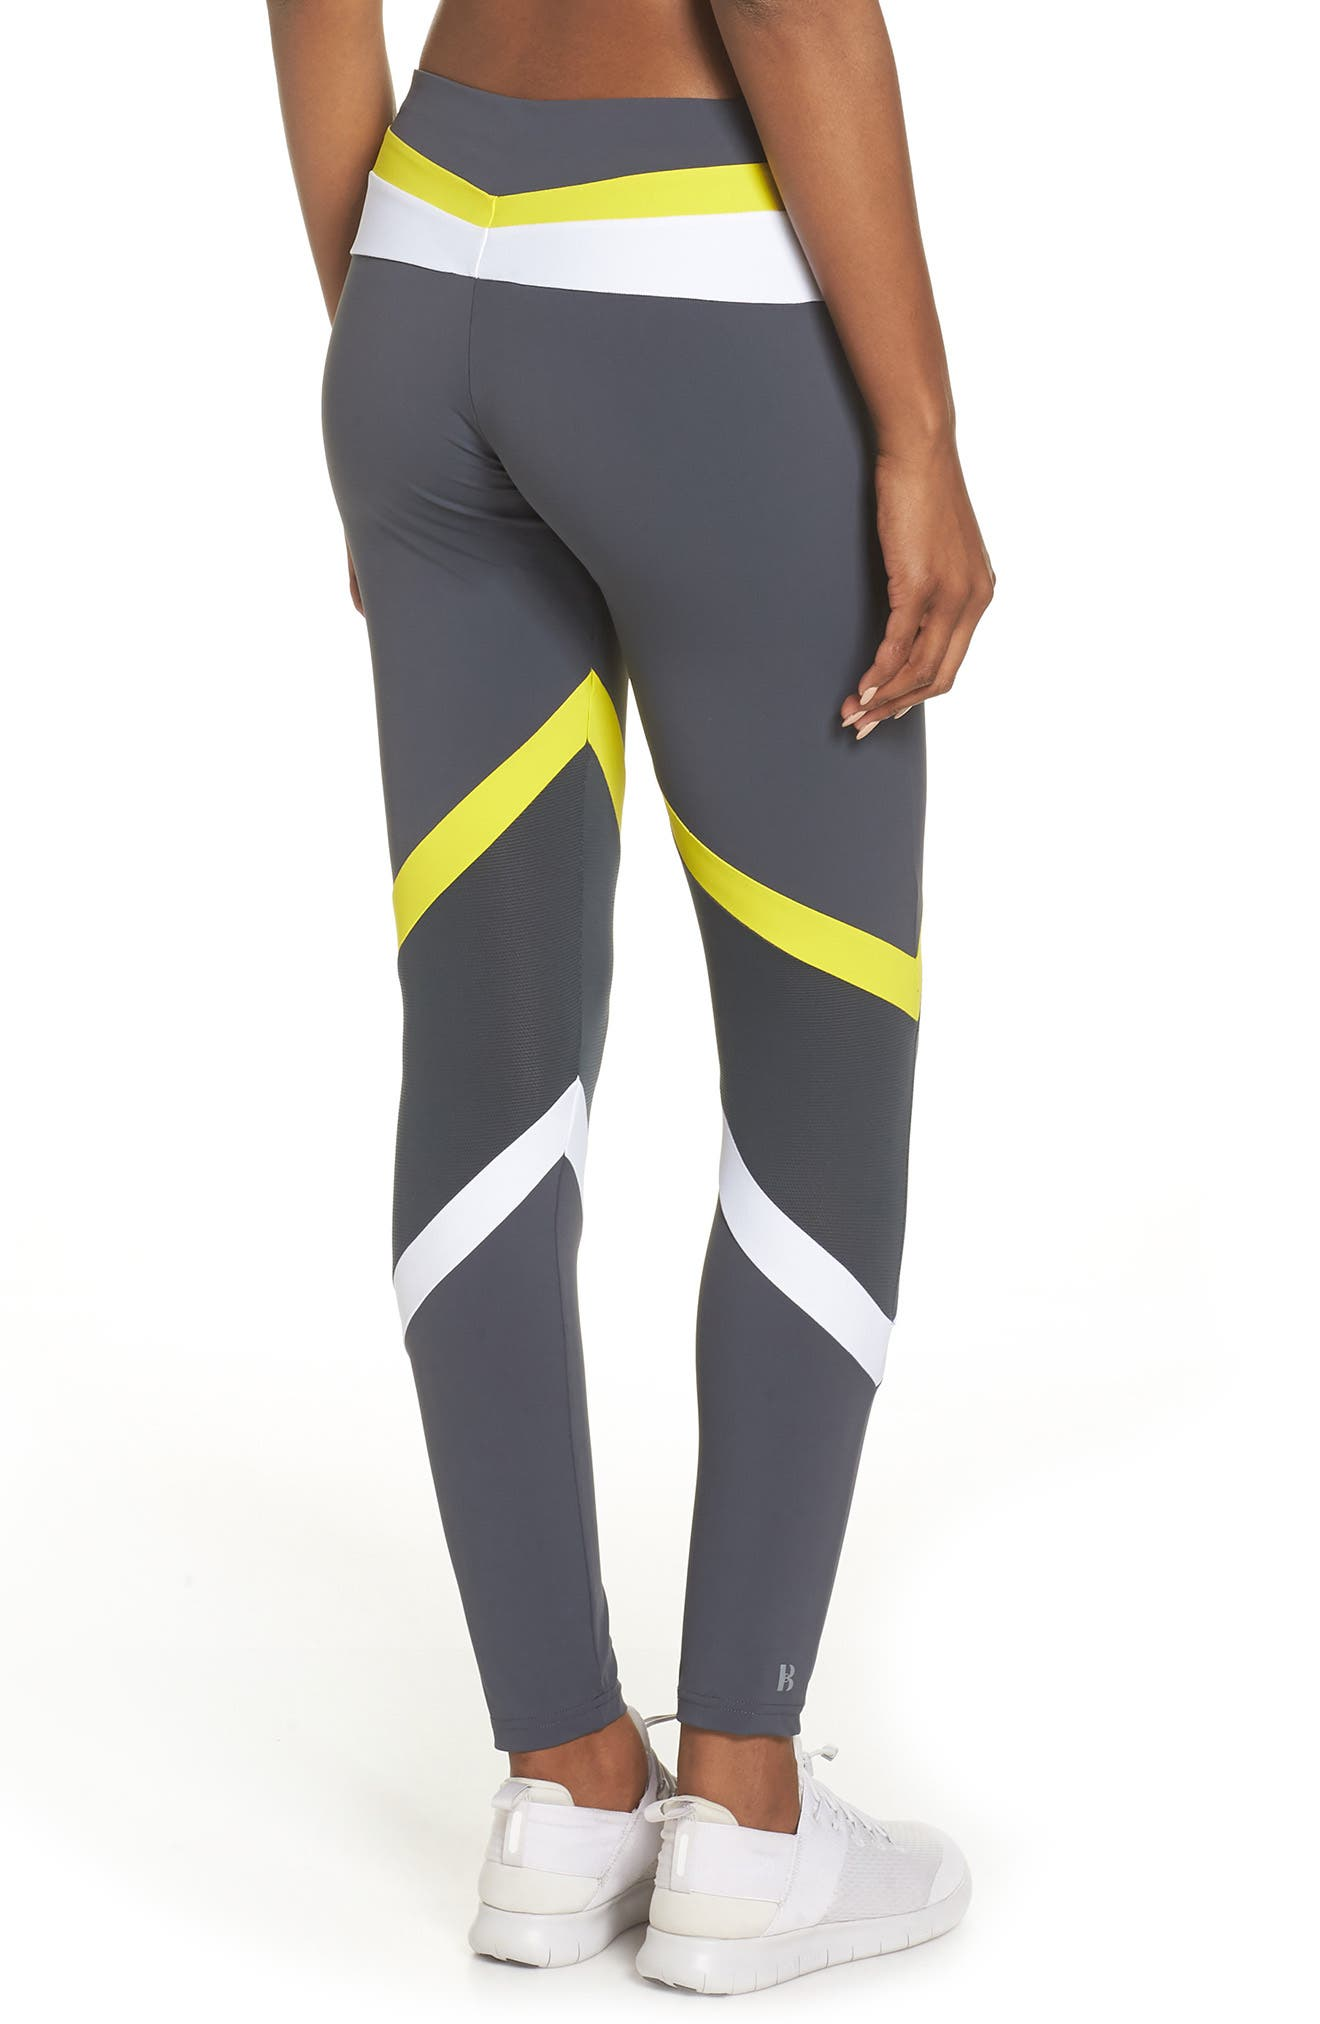 BoomBoom Athletica Tricolor Leggings,                             Alternate thumbnail 2, color,                             GREY/ WHITE/ YELLOW